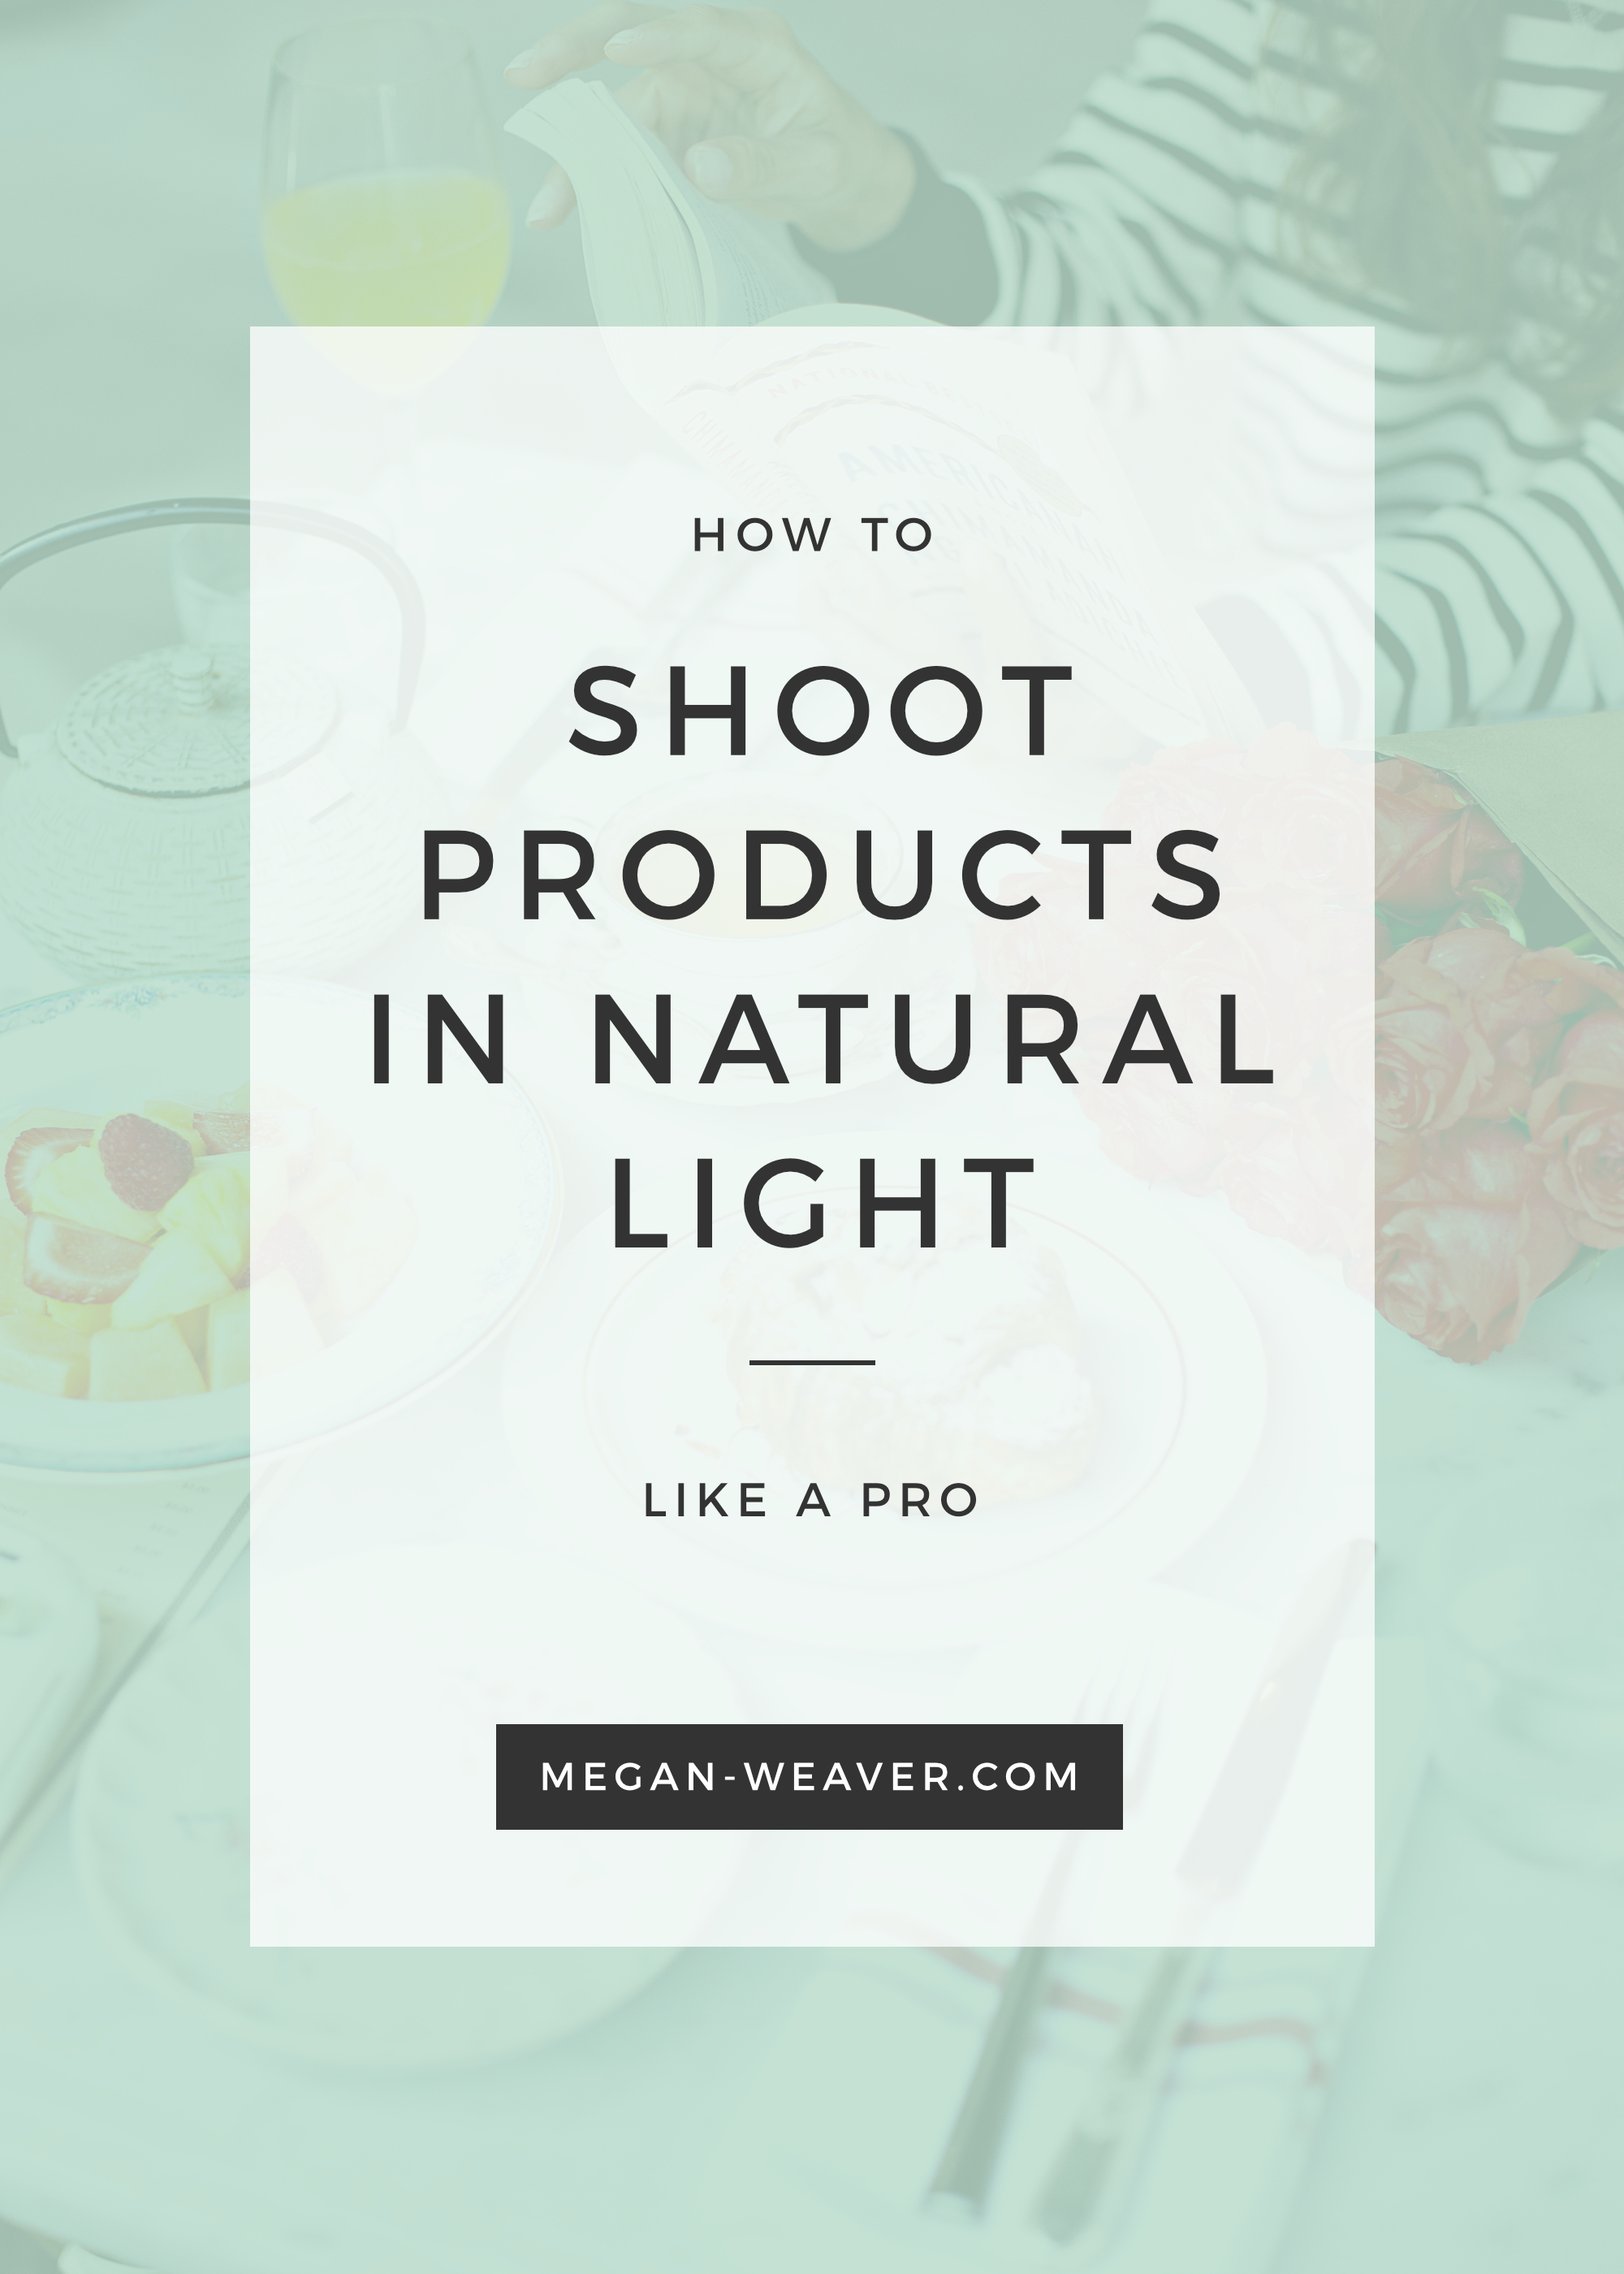 Ever wonder how avid Instagram-ers get those perfectly bright product photos? Learn how to shoot your own gorgeous product shots with this step-by-step tutorial! All you need is a little natural light and $5 worth of tools.